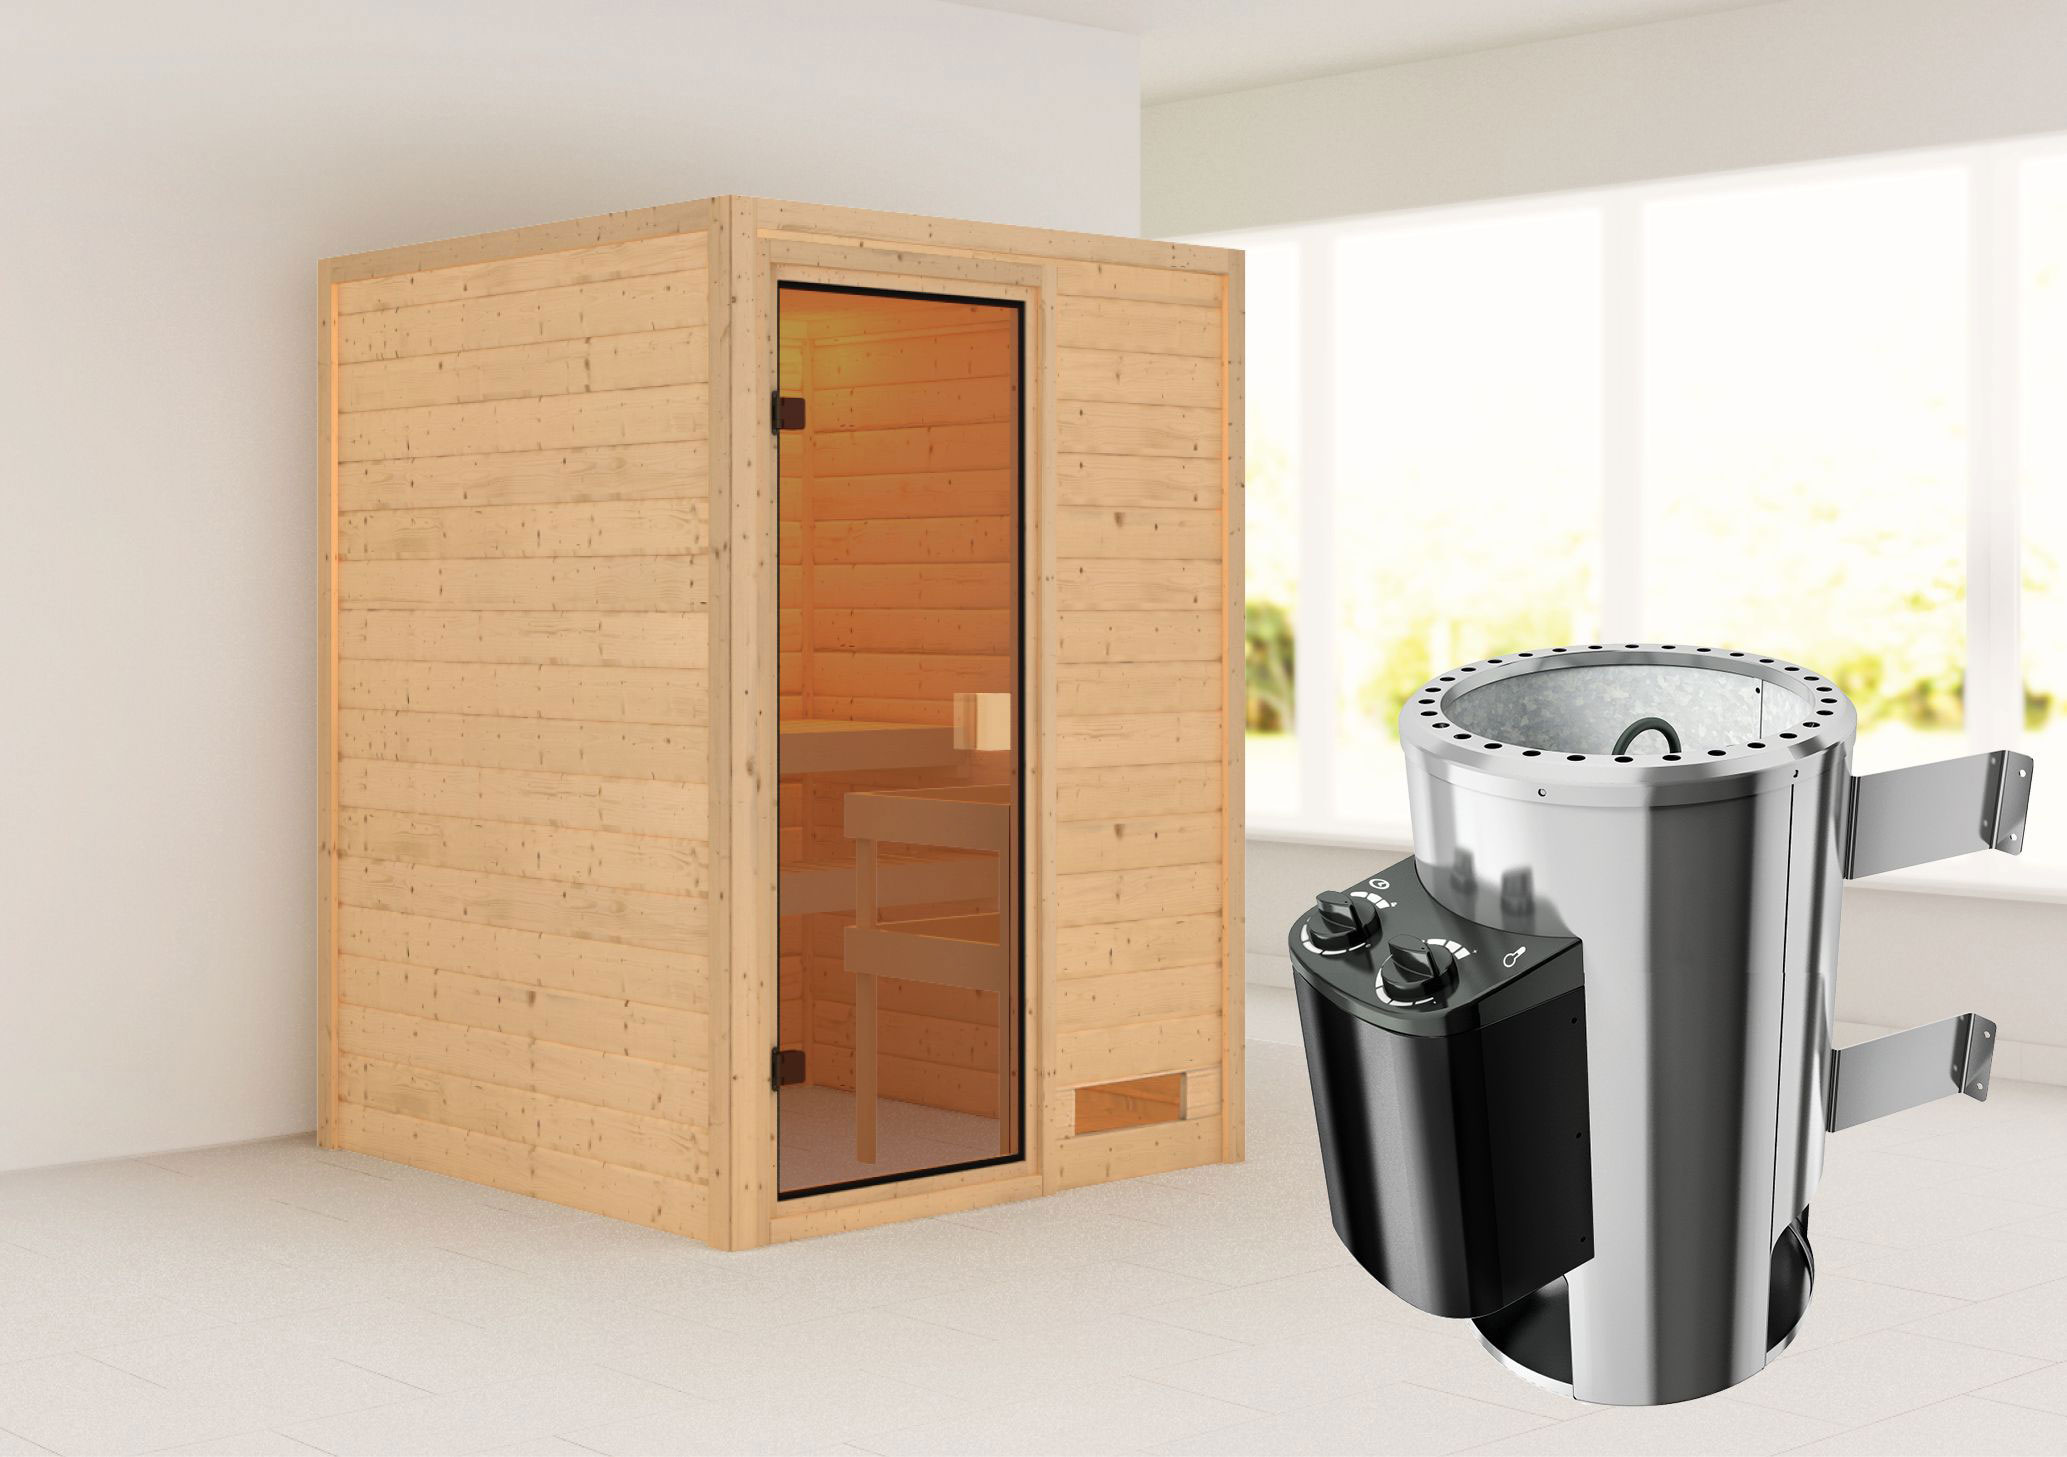 karibu sauna nadja 230 volt mit saunaofen 3 6kw intern. Black Bedroom Furniture Sets. Home Design Ideas